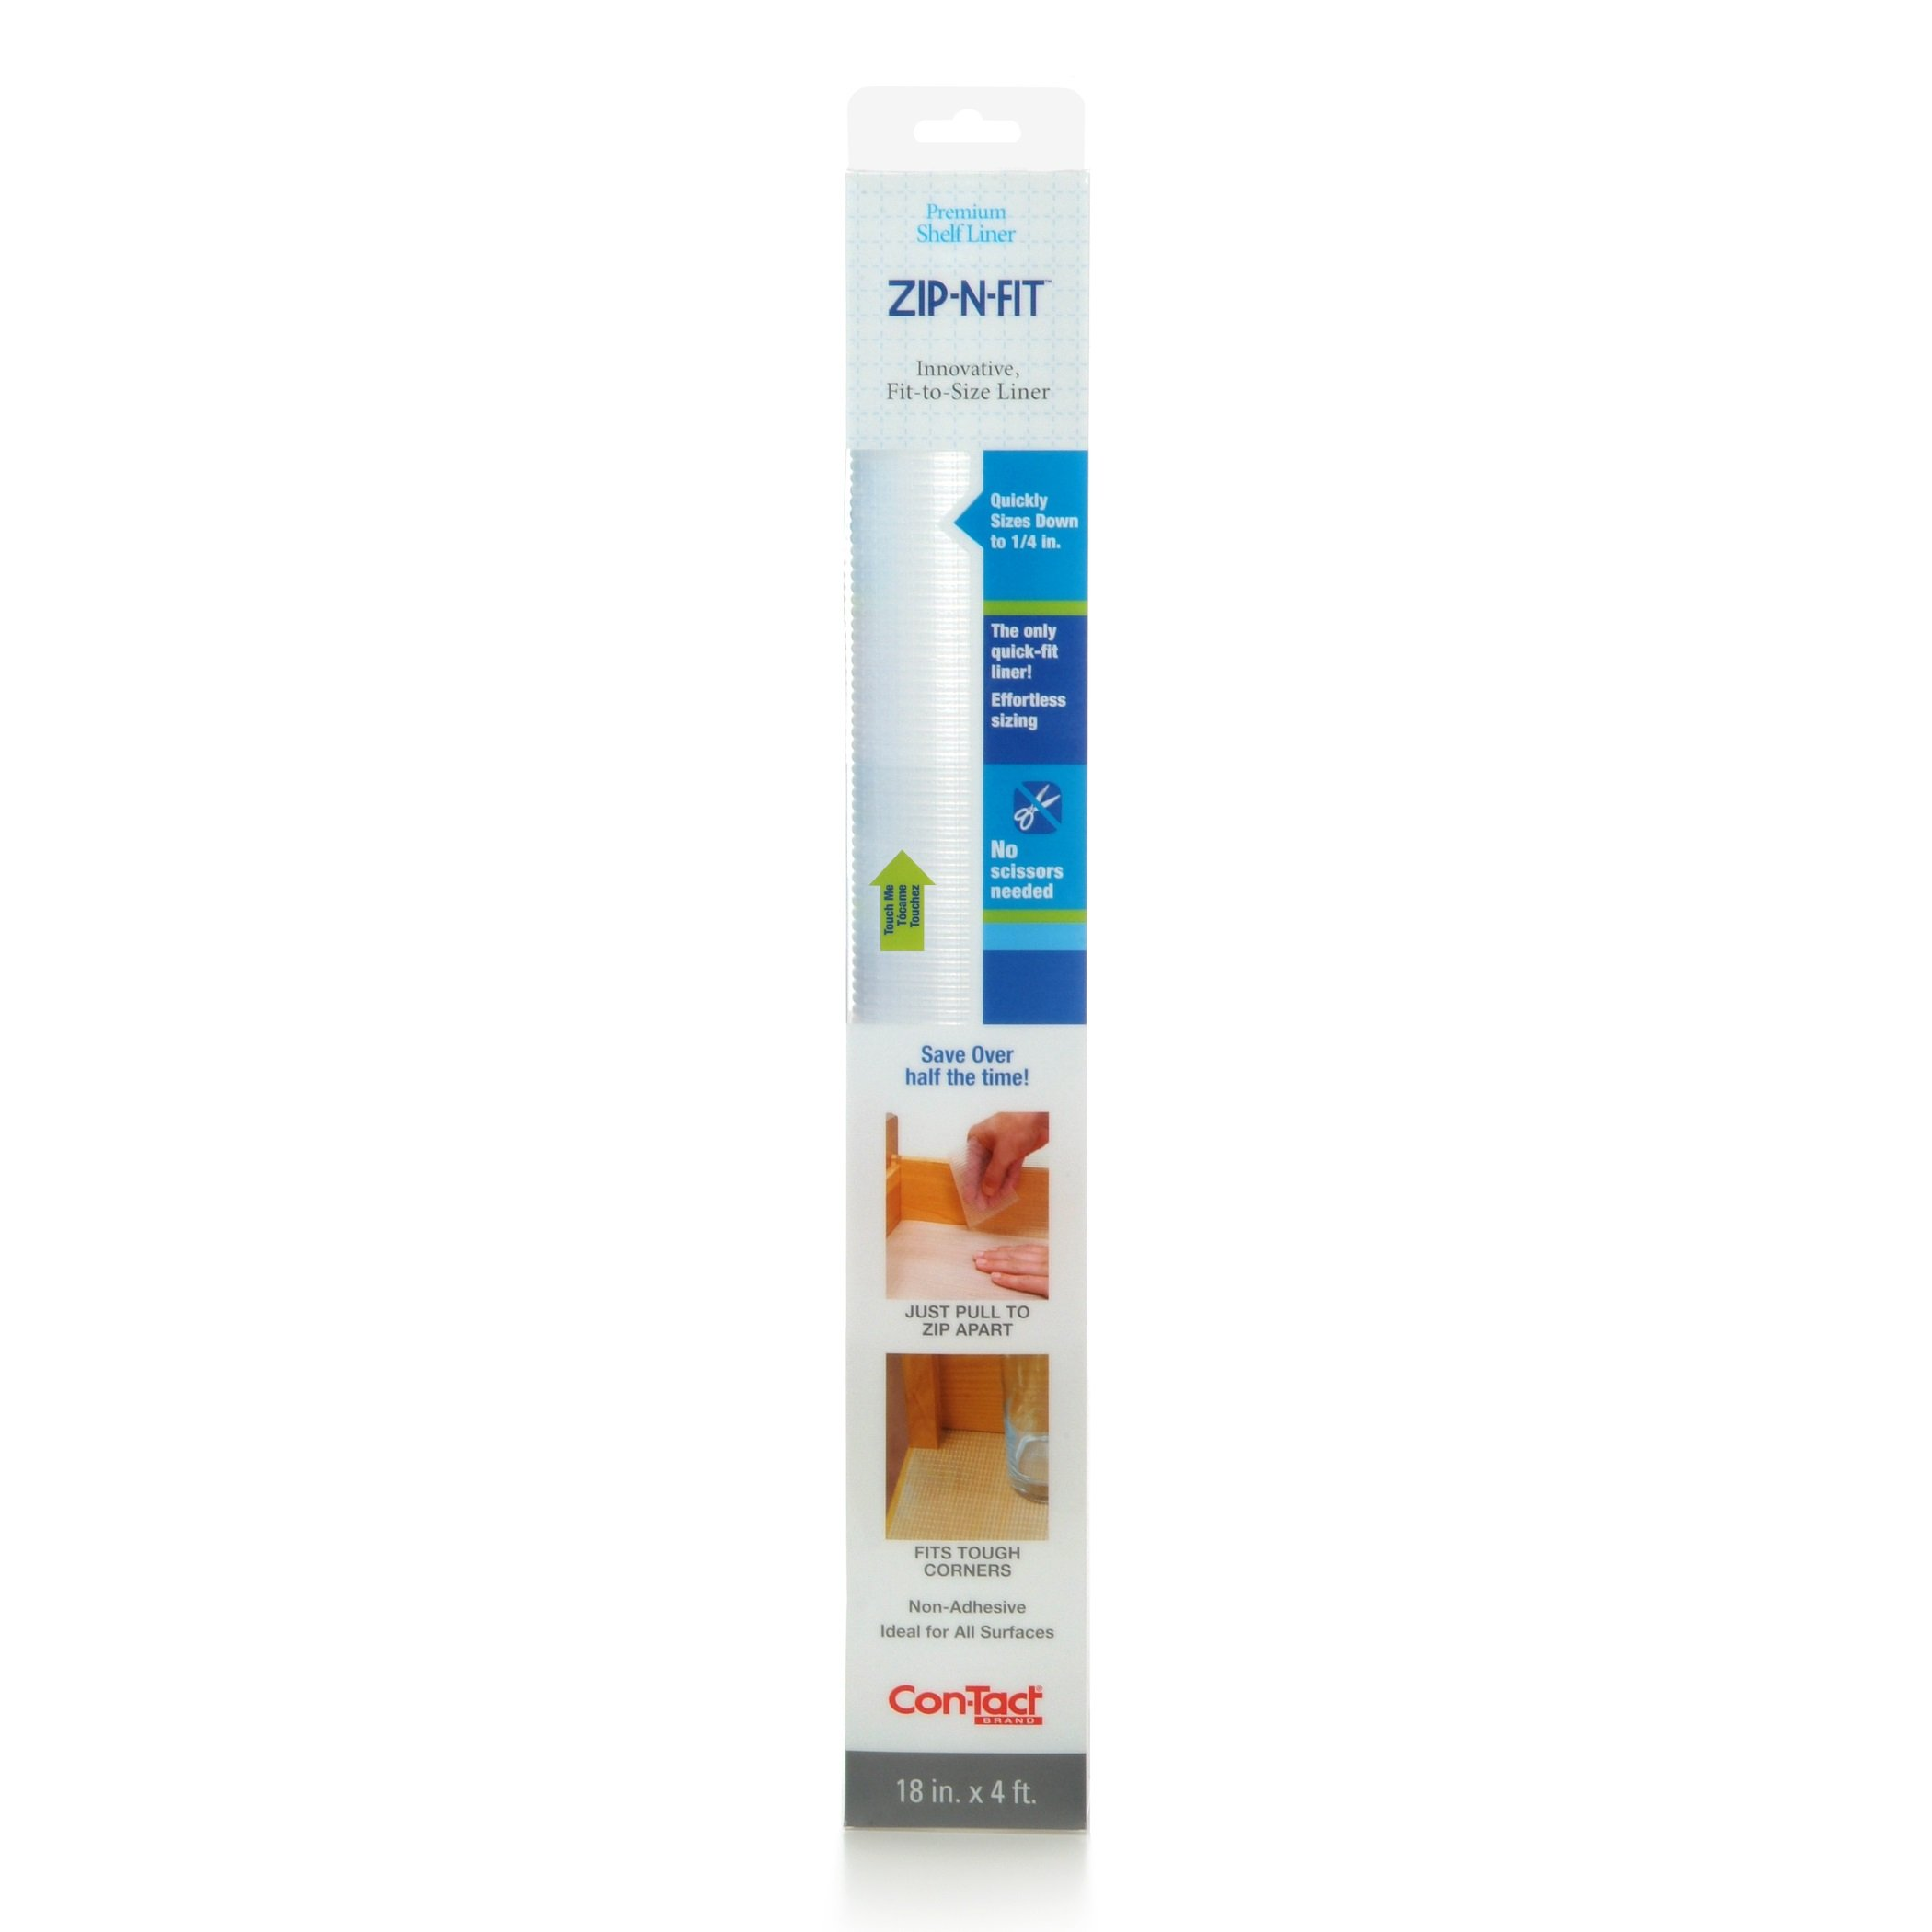 Con-Tact Brand Zip-N-Fit Premium Non-Adhesive Perforated Shelf and Drawer Liner, No Scissors Needed, 18-Inches by 4-Feet, Ribbed Clear, 6 Rolls by Con-Tact Brand